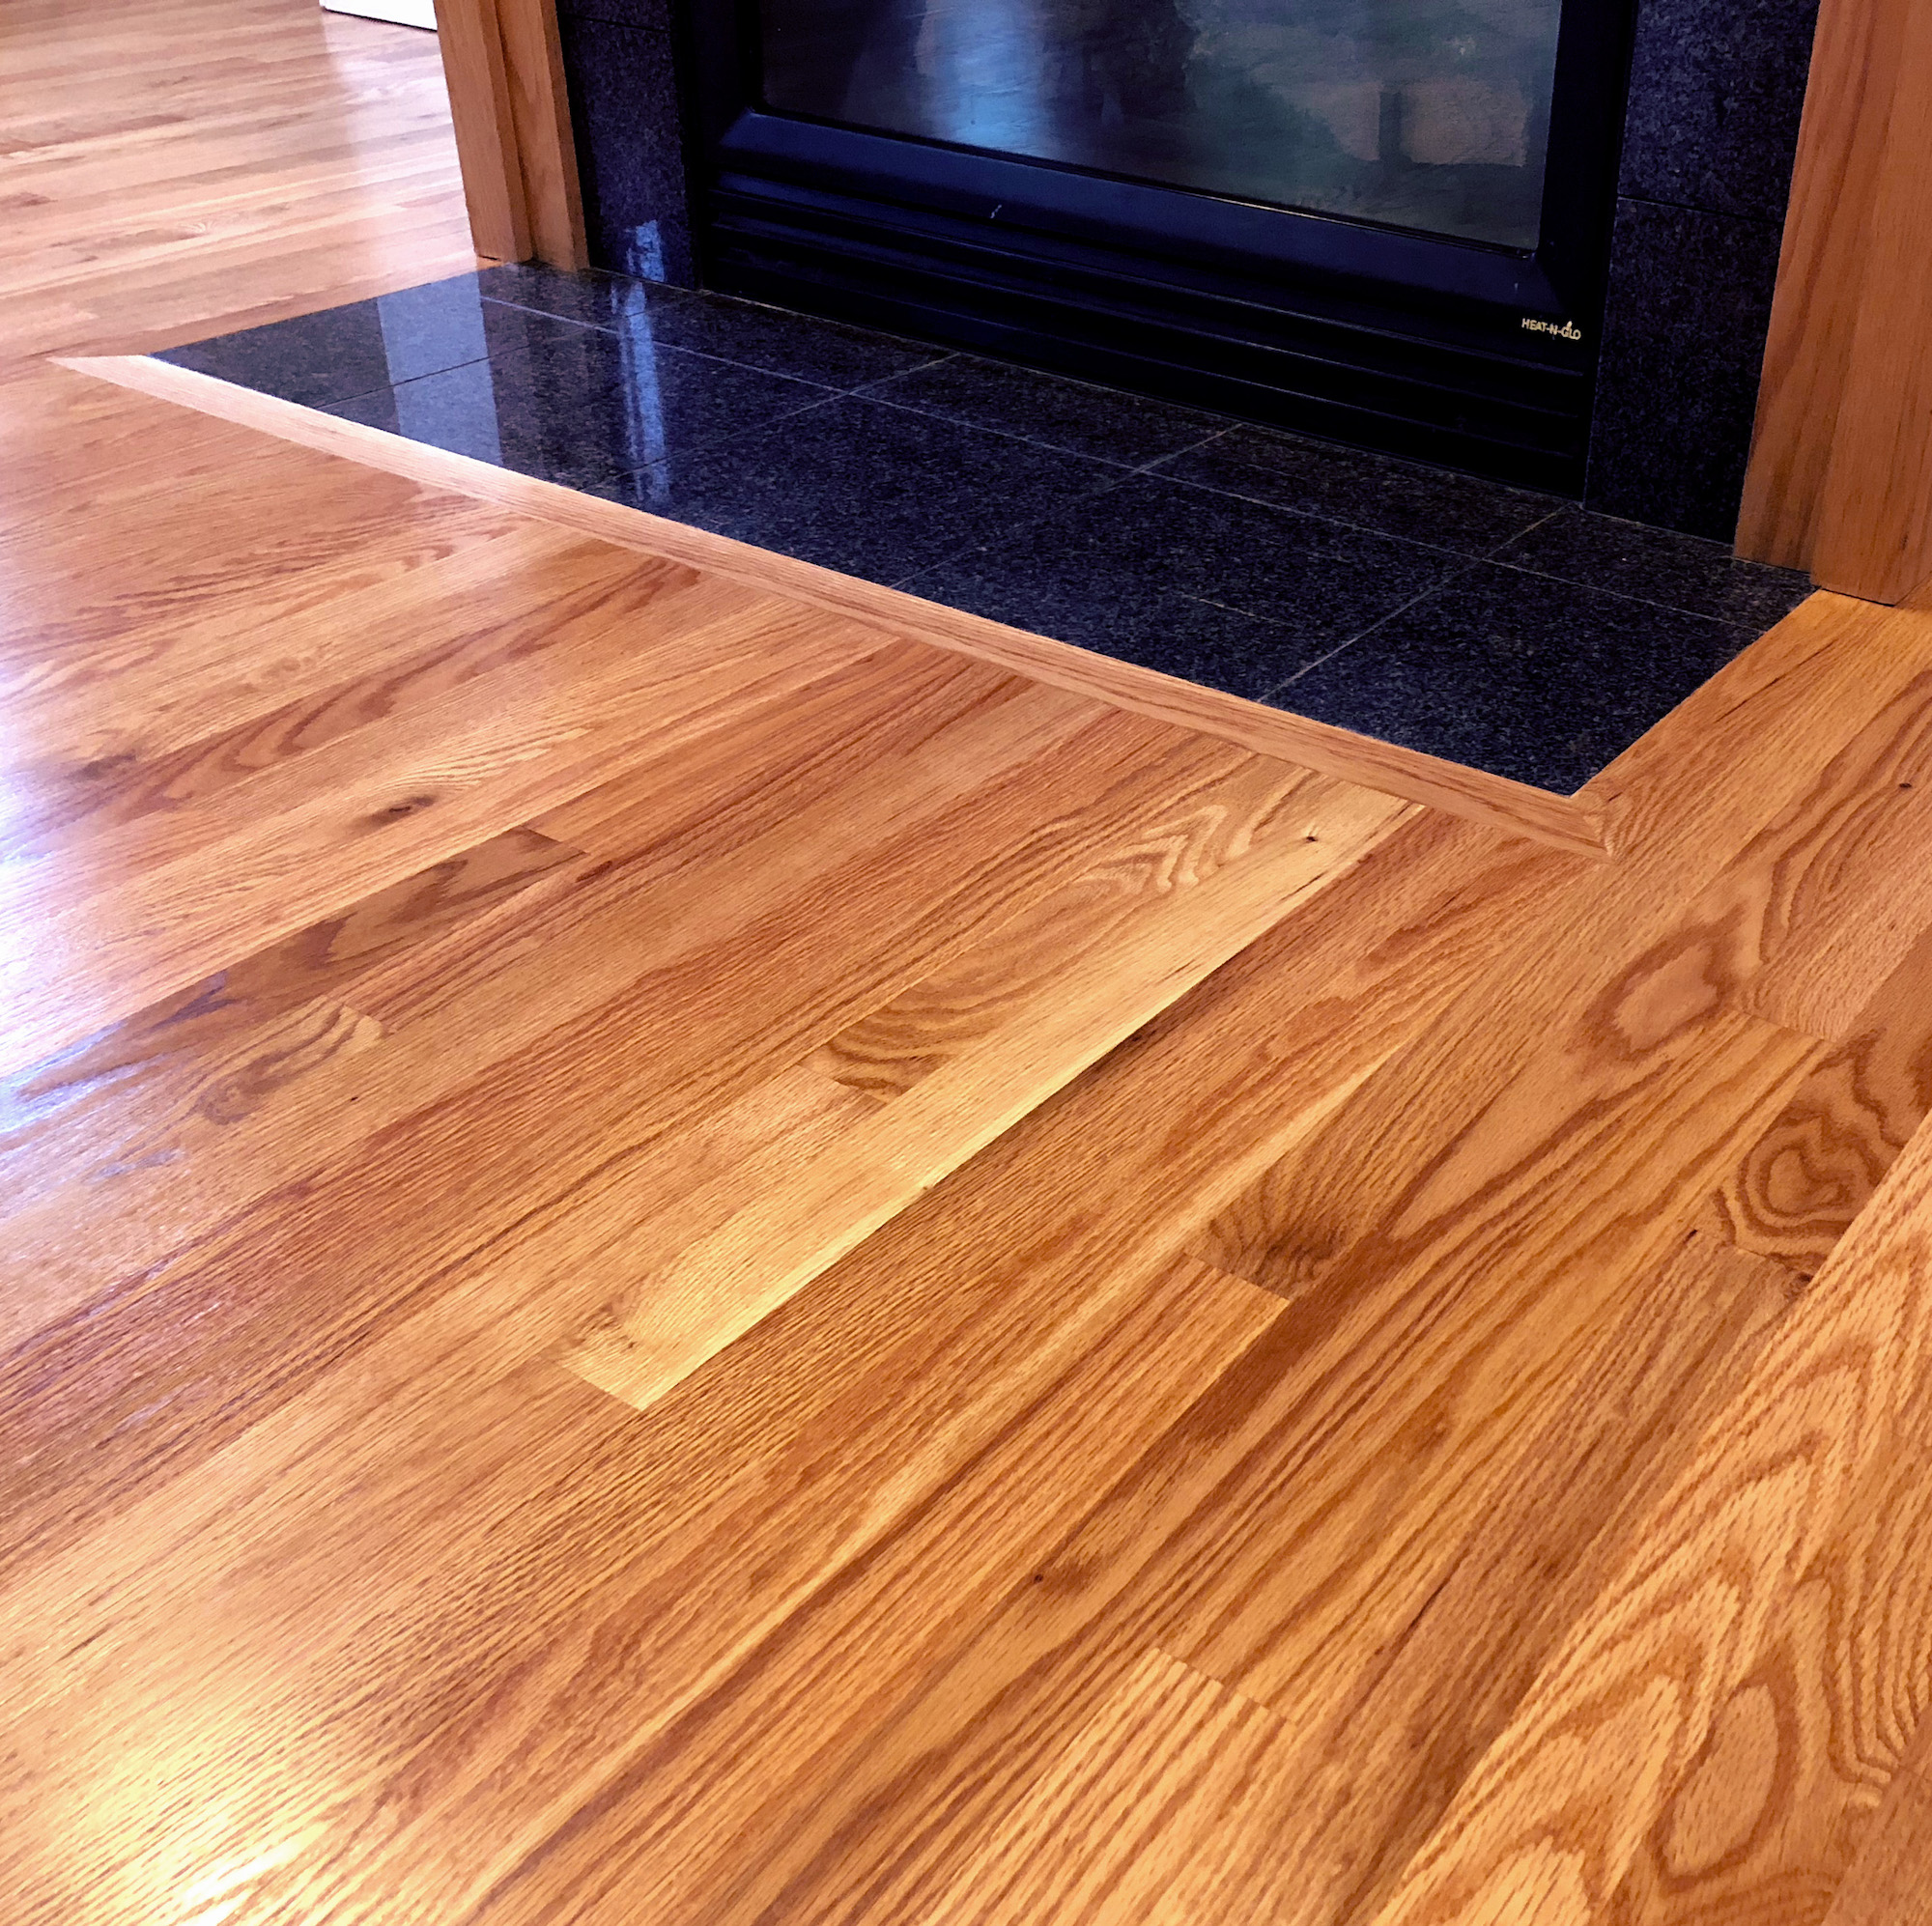 No Regrets - There are so many ways to go wrong with home improvement projects. Don't let your hardwood floor contractor be one of those.